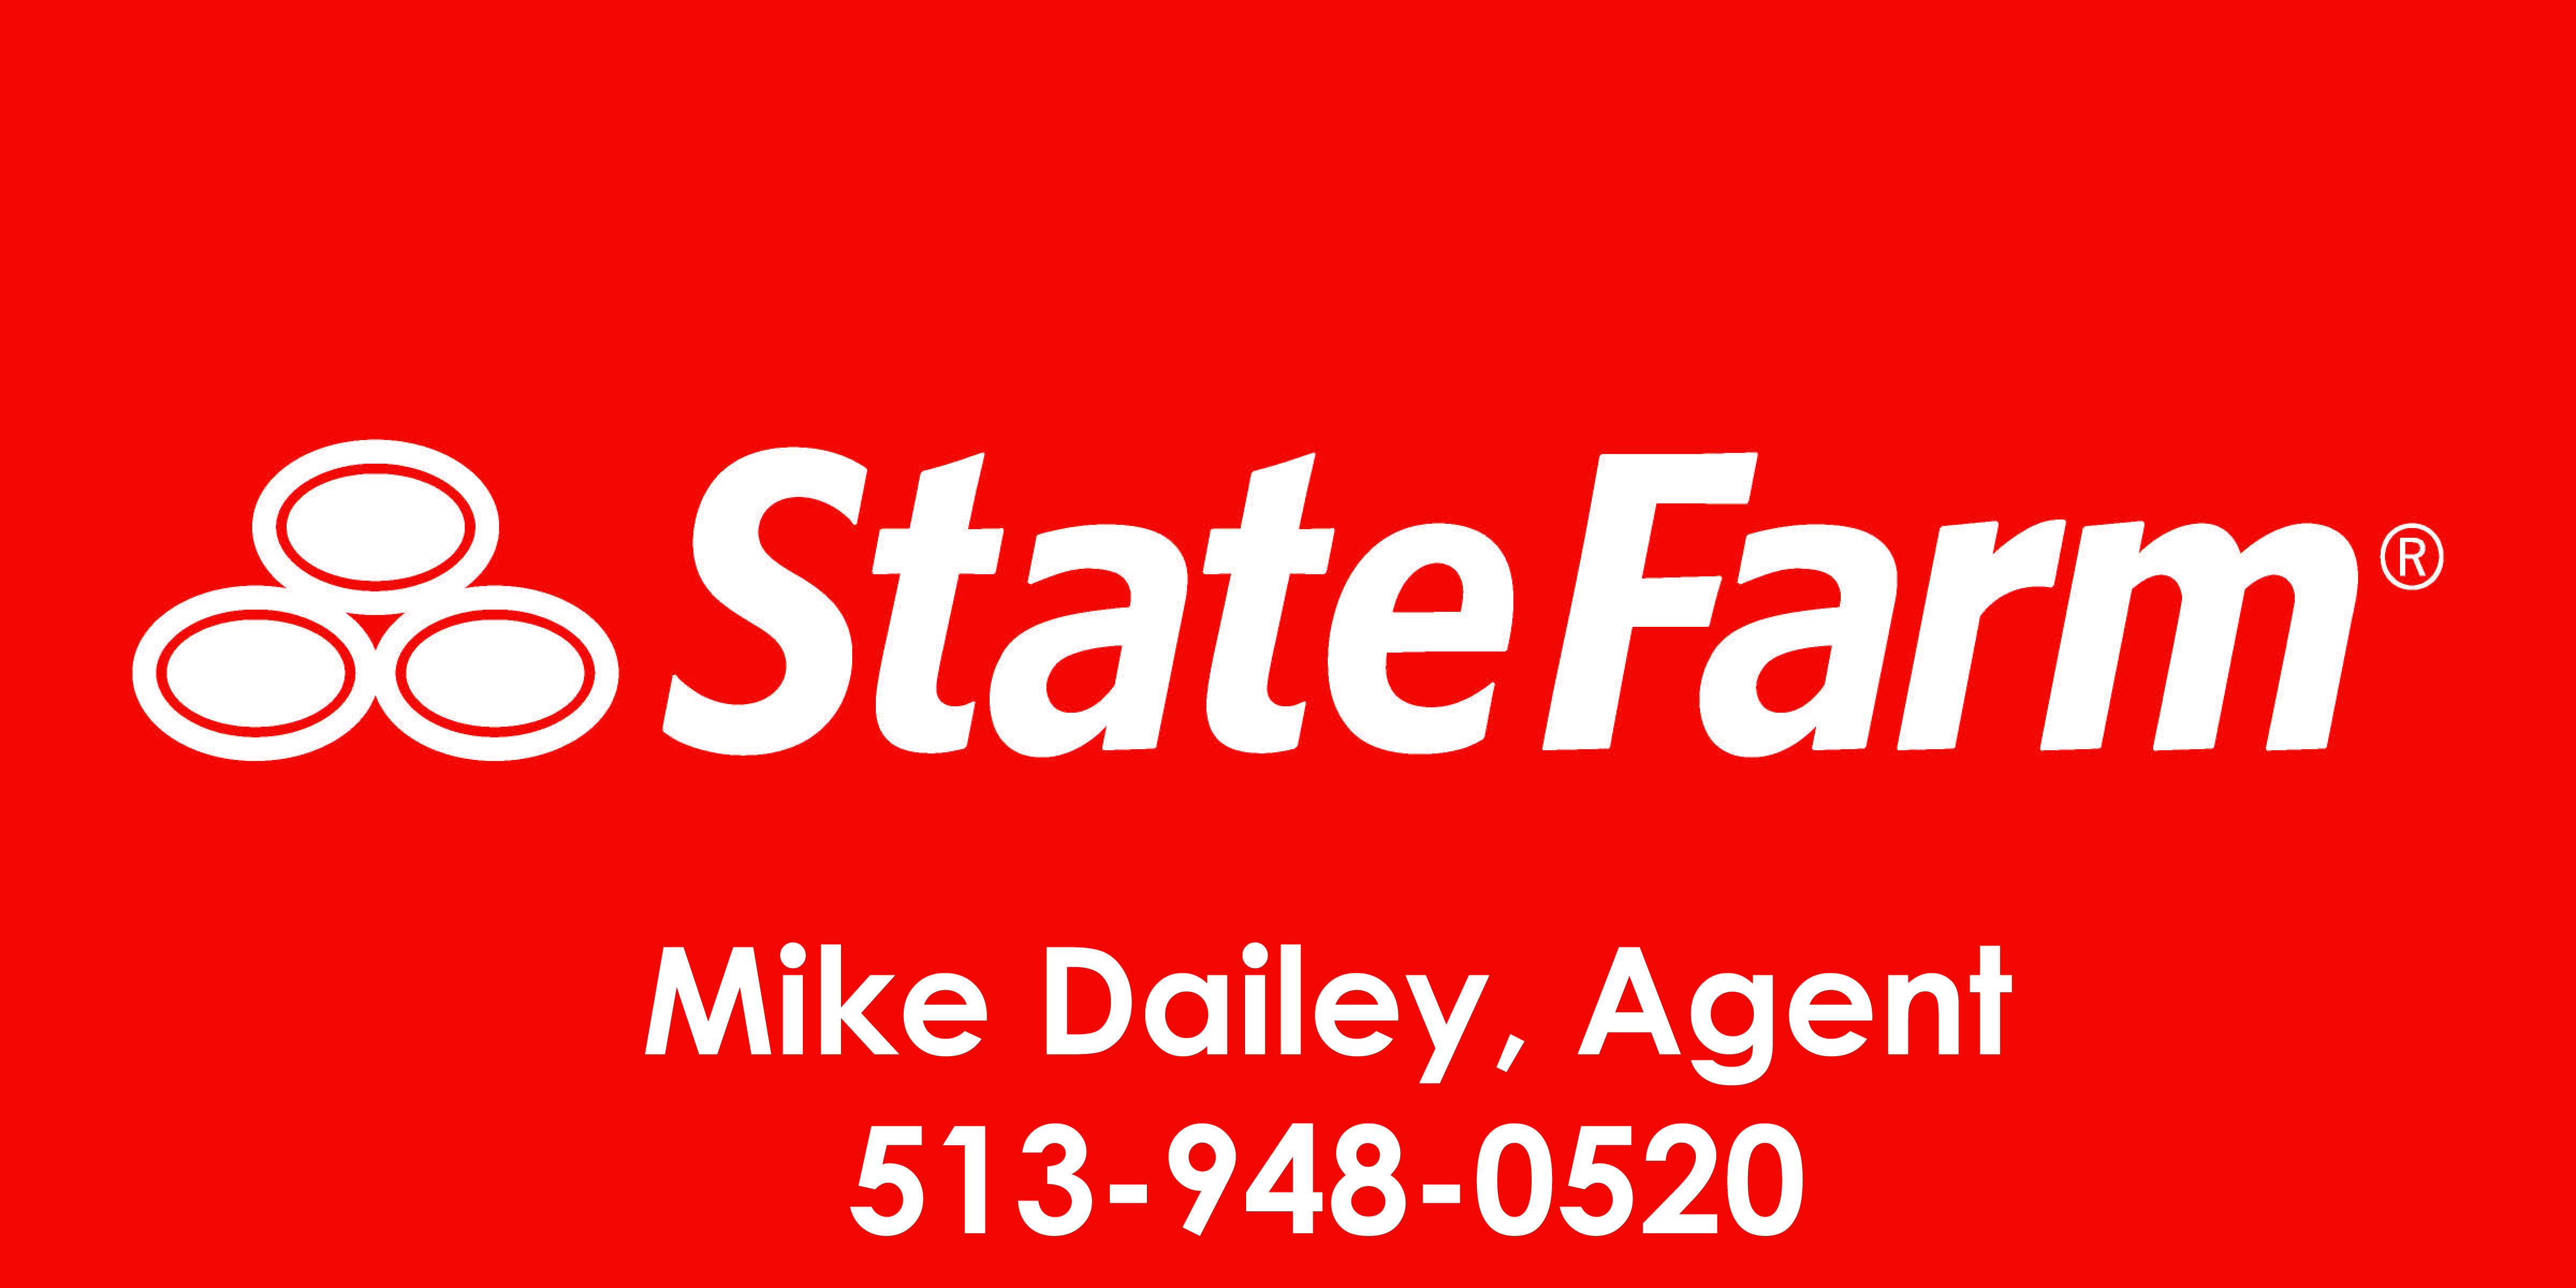 State Farm Logo with name